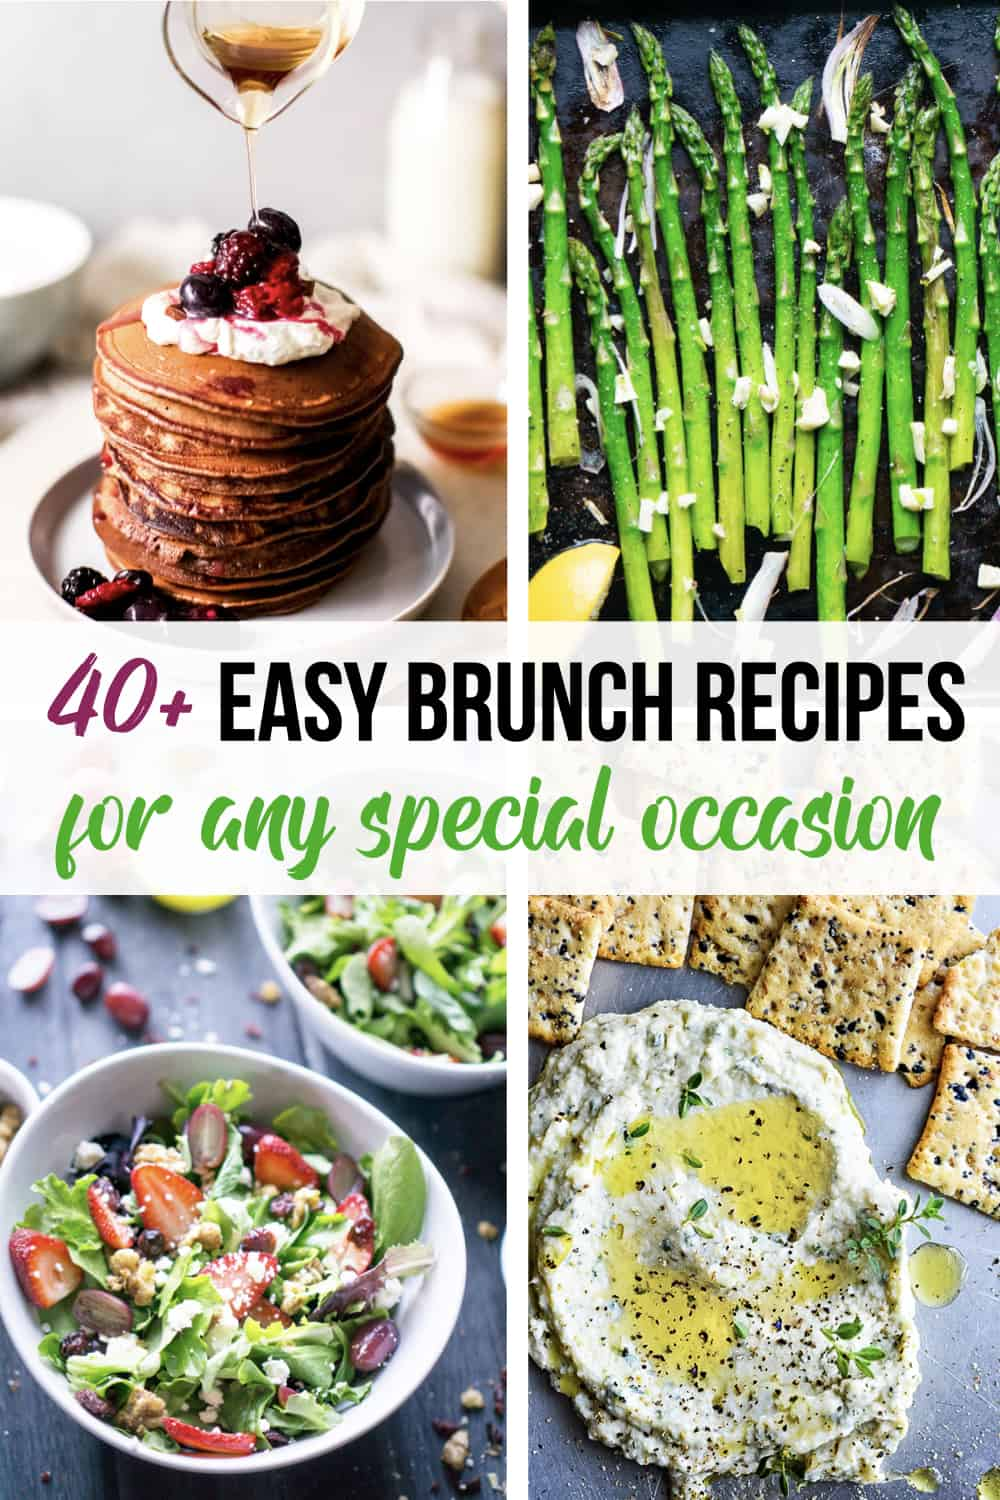 Image collage of 4 brunch recipes with title text overly